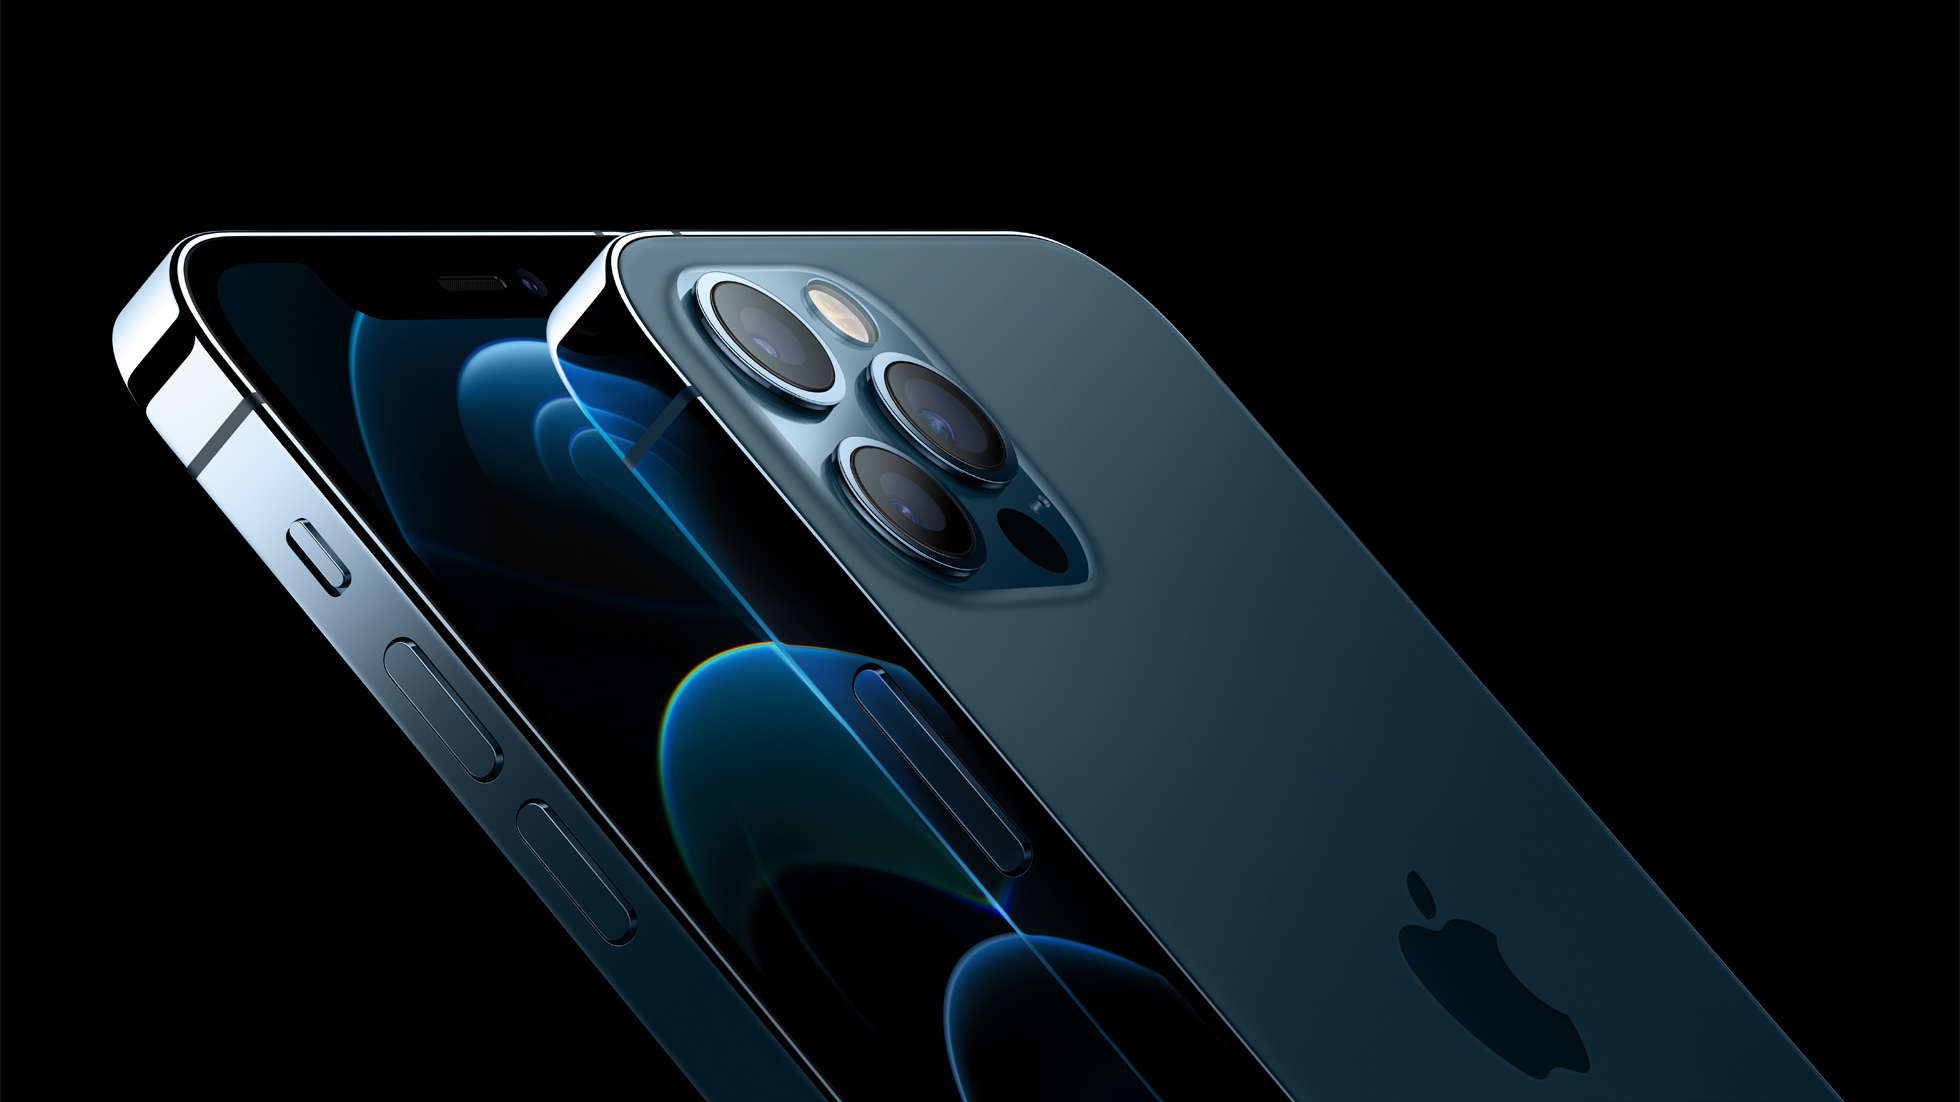 Apple releases the iPhone 12 Mini and Pro Max variants amidst a wireless-charging controversy